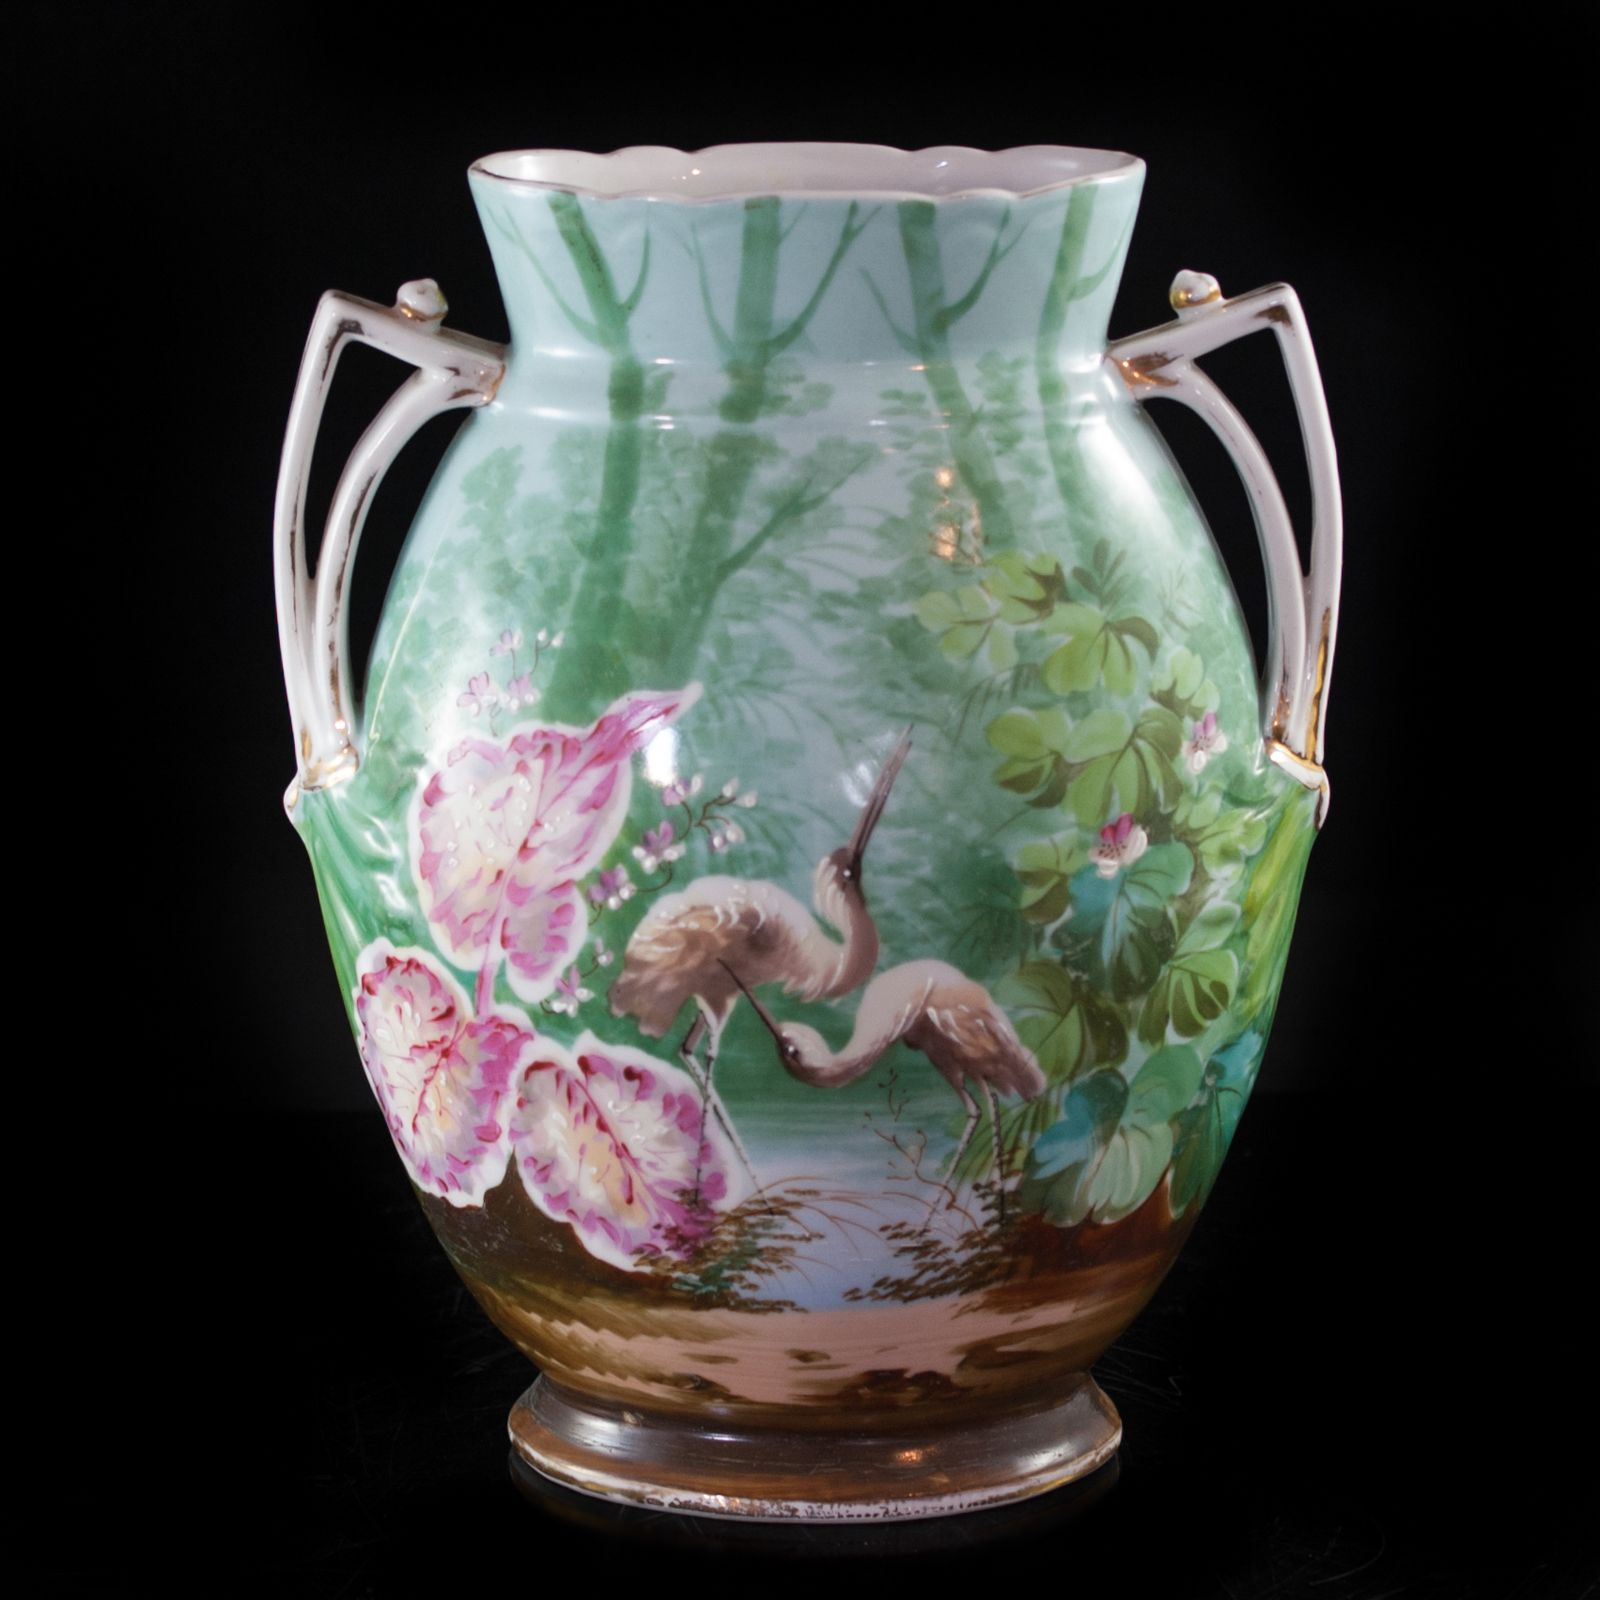 Lot #34: Old Paris Vase DESCRIPTION: An old paris porcelain vase with a hand painted illustration of two cranes in the wild. The colors used in the illustration match the famille rose color pallete and the handles of the vase are also decorated with gilded patterns running along its sides.  CIRCA: 20th Ct. ORIGIN: France DIMENSIONS: 5 1/2″ W x 10 3/4″ L x 13 3/4″ H